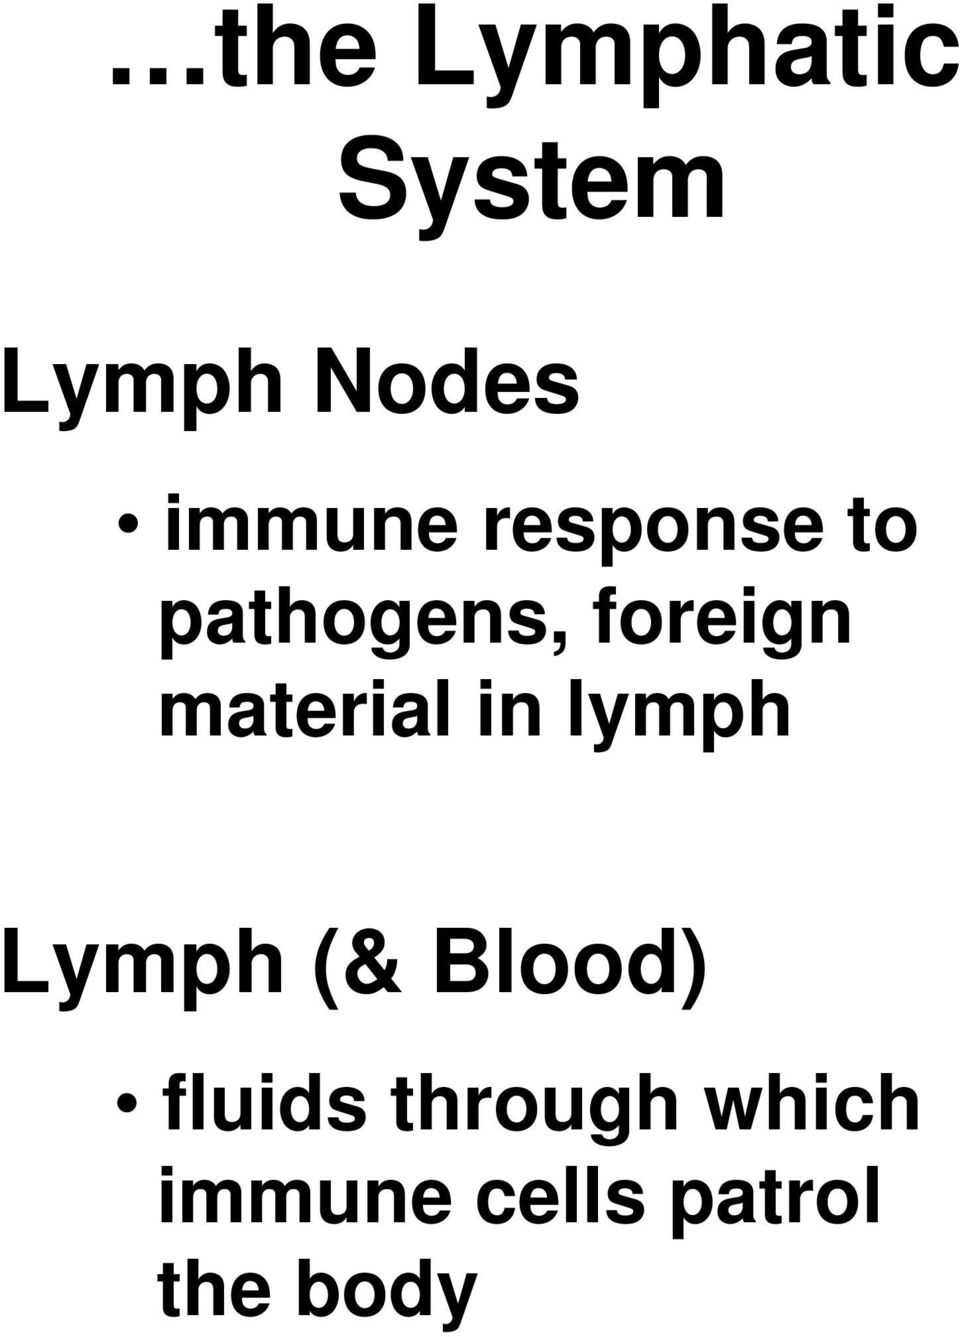 material in lymph Lymph (& Blood)